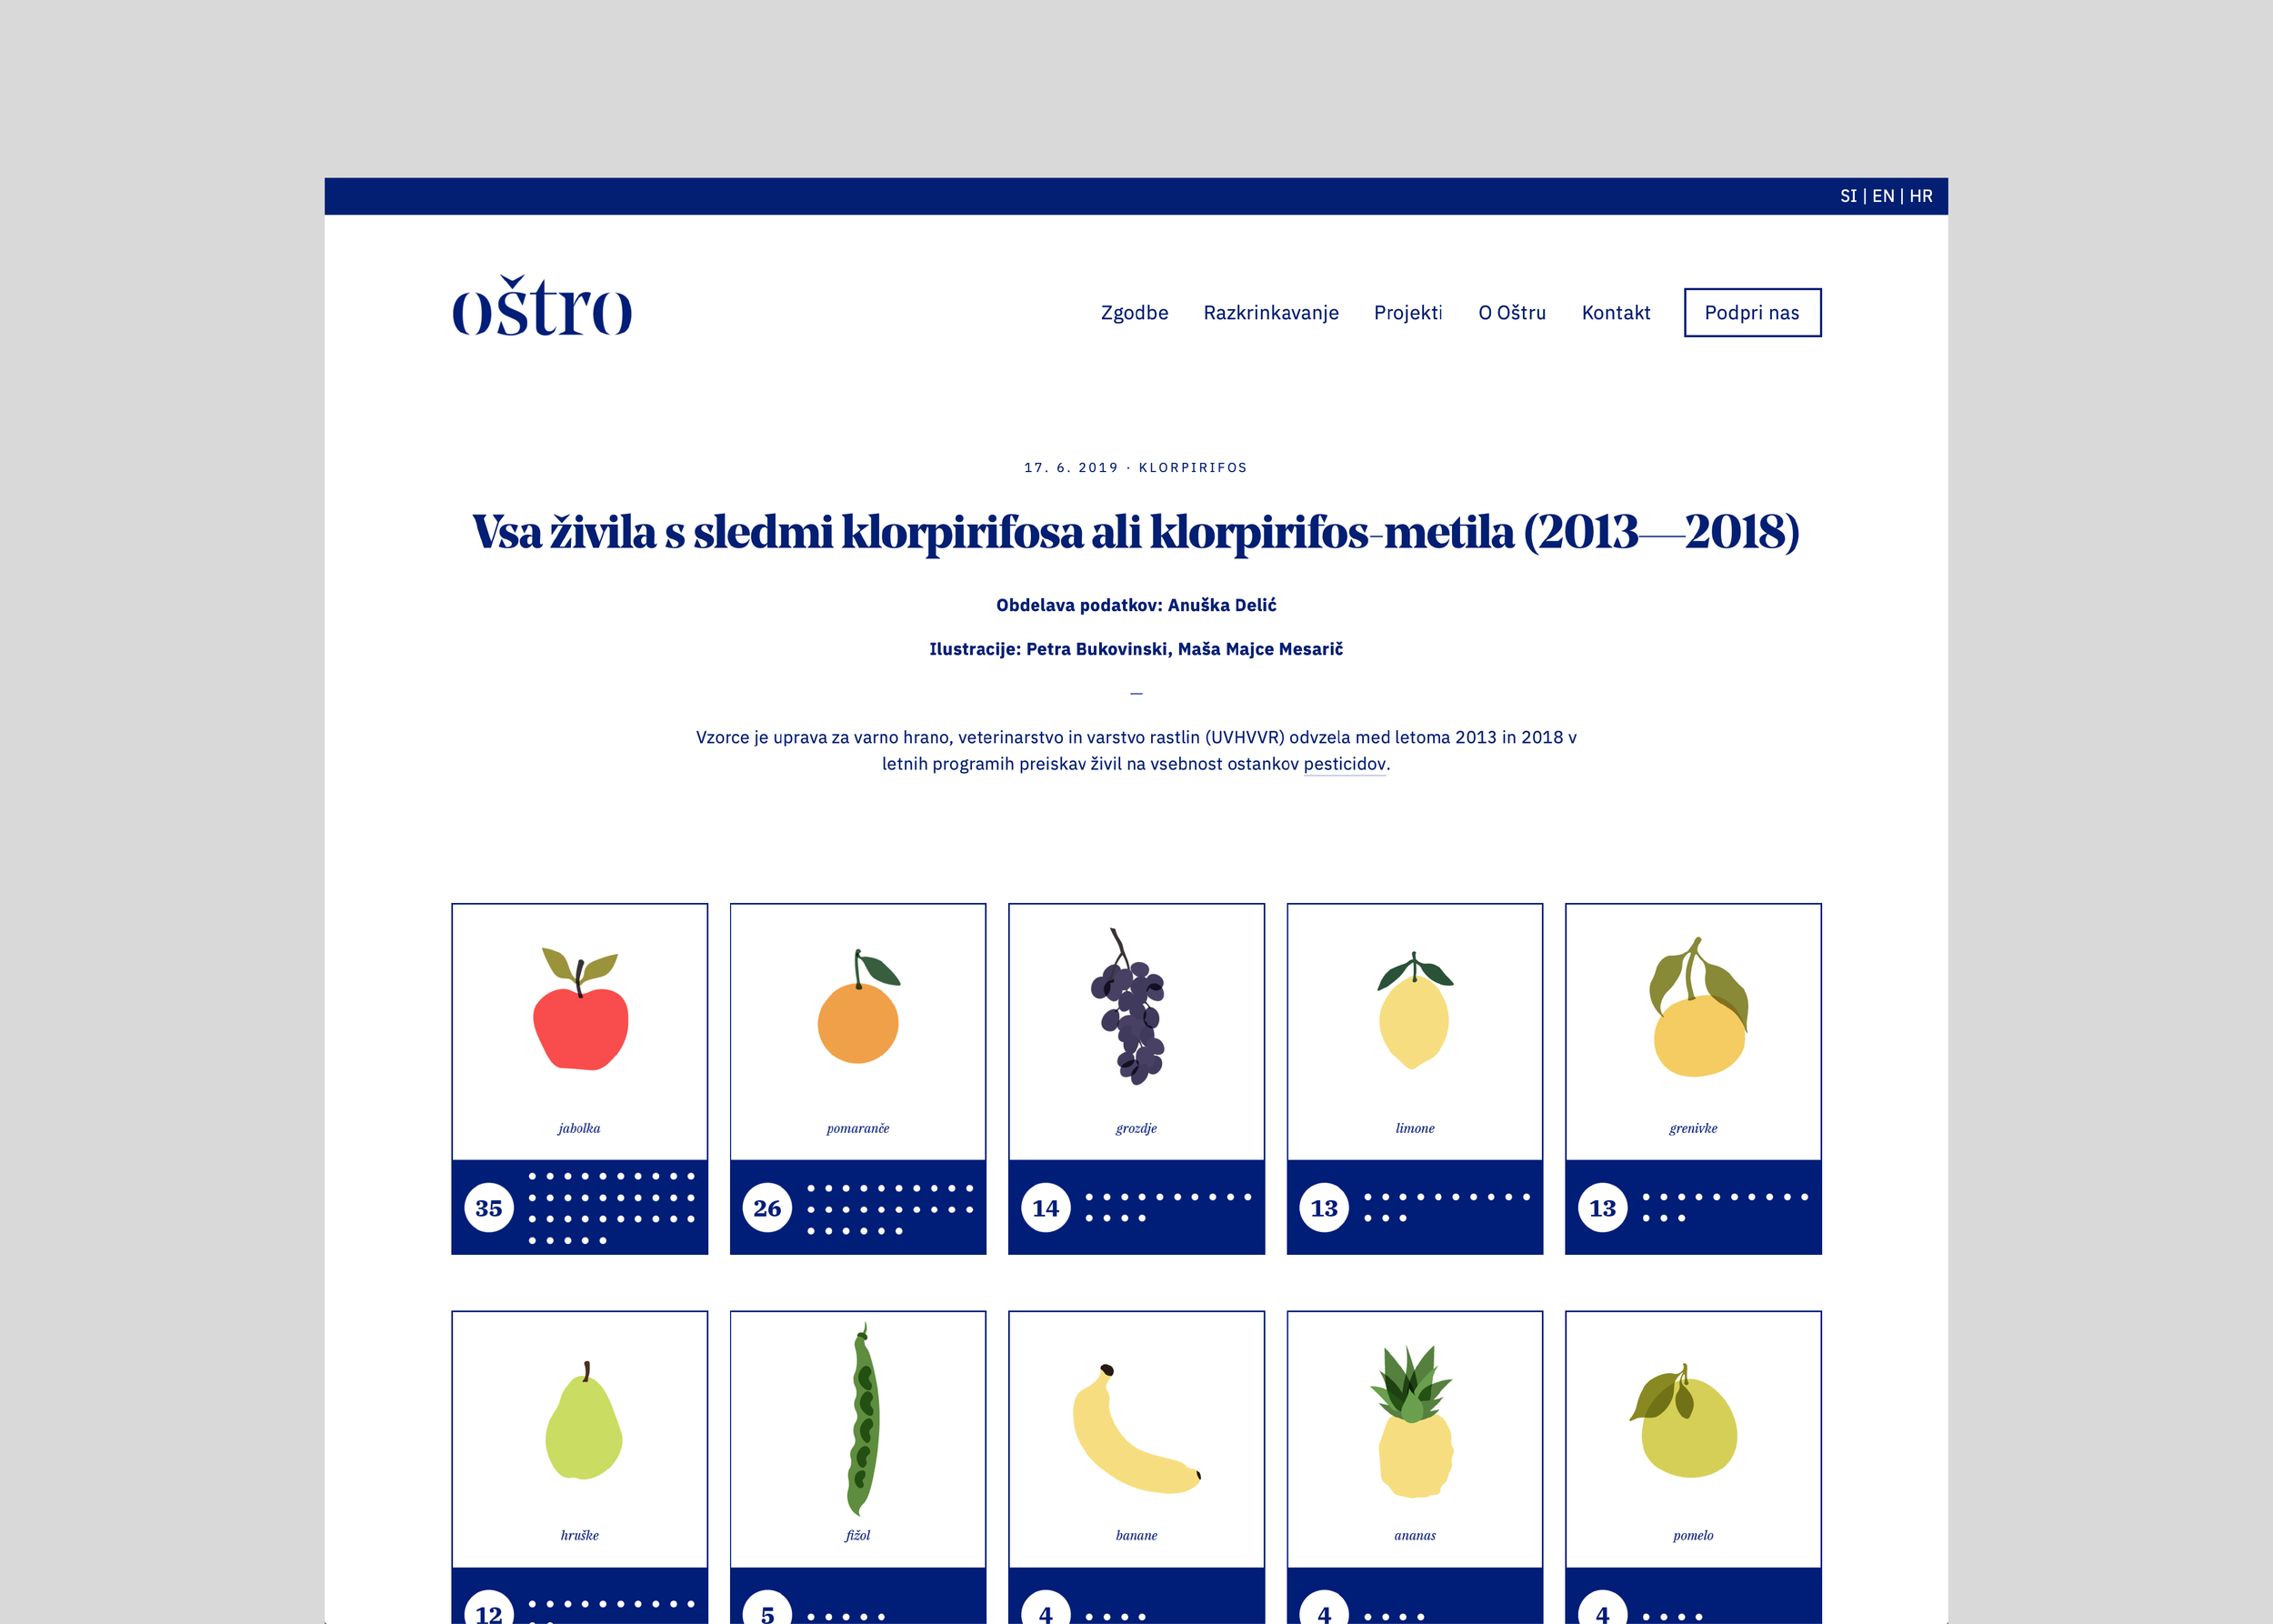 Ostro_6_Web-Infographic.png